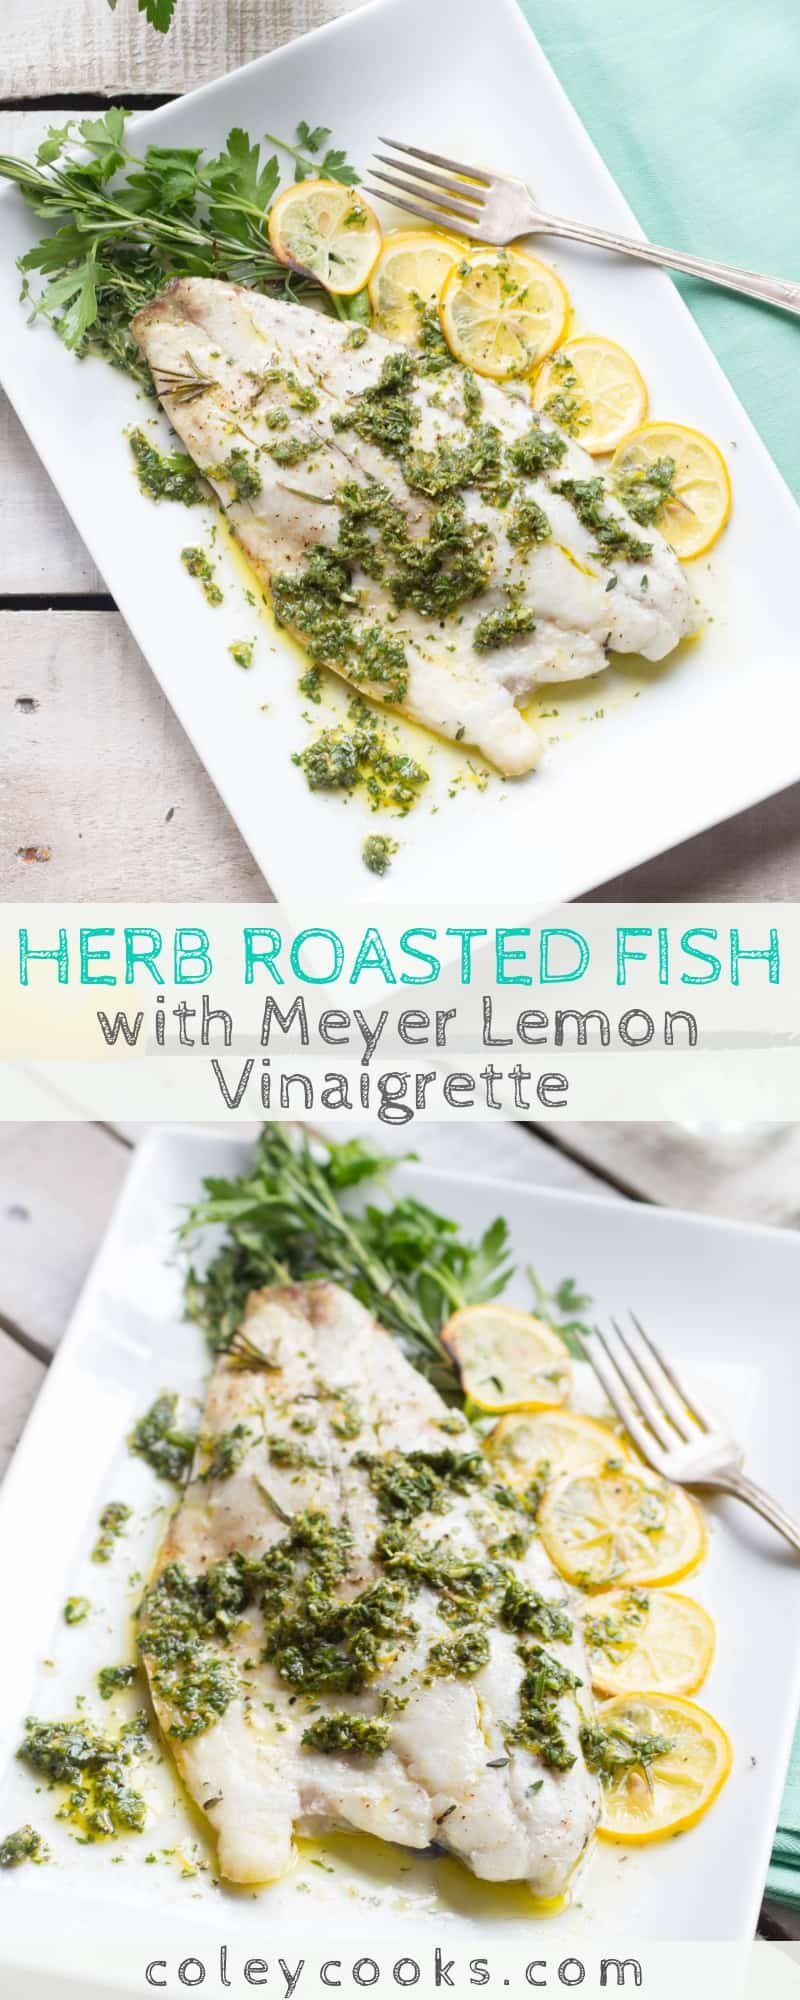 This easy recipe for Herb Roasted Fish with Meyer Lemon Vinaigrette is an easy, healthy recipe that can be made in 20 minutes! Adaptable to many different types of fish. #easy #fish #seafood #recipe #barramundi #meyerlemon #roasted | ColeyCooks.com